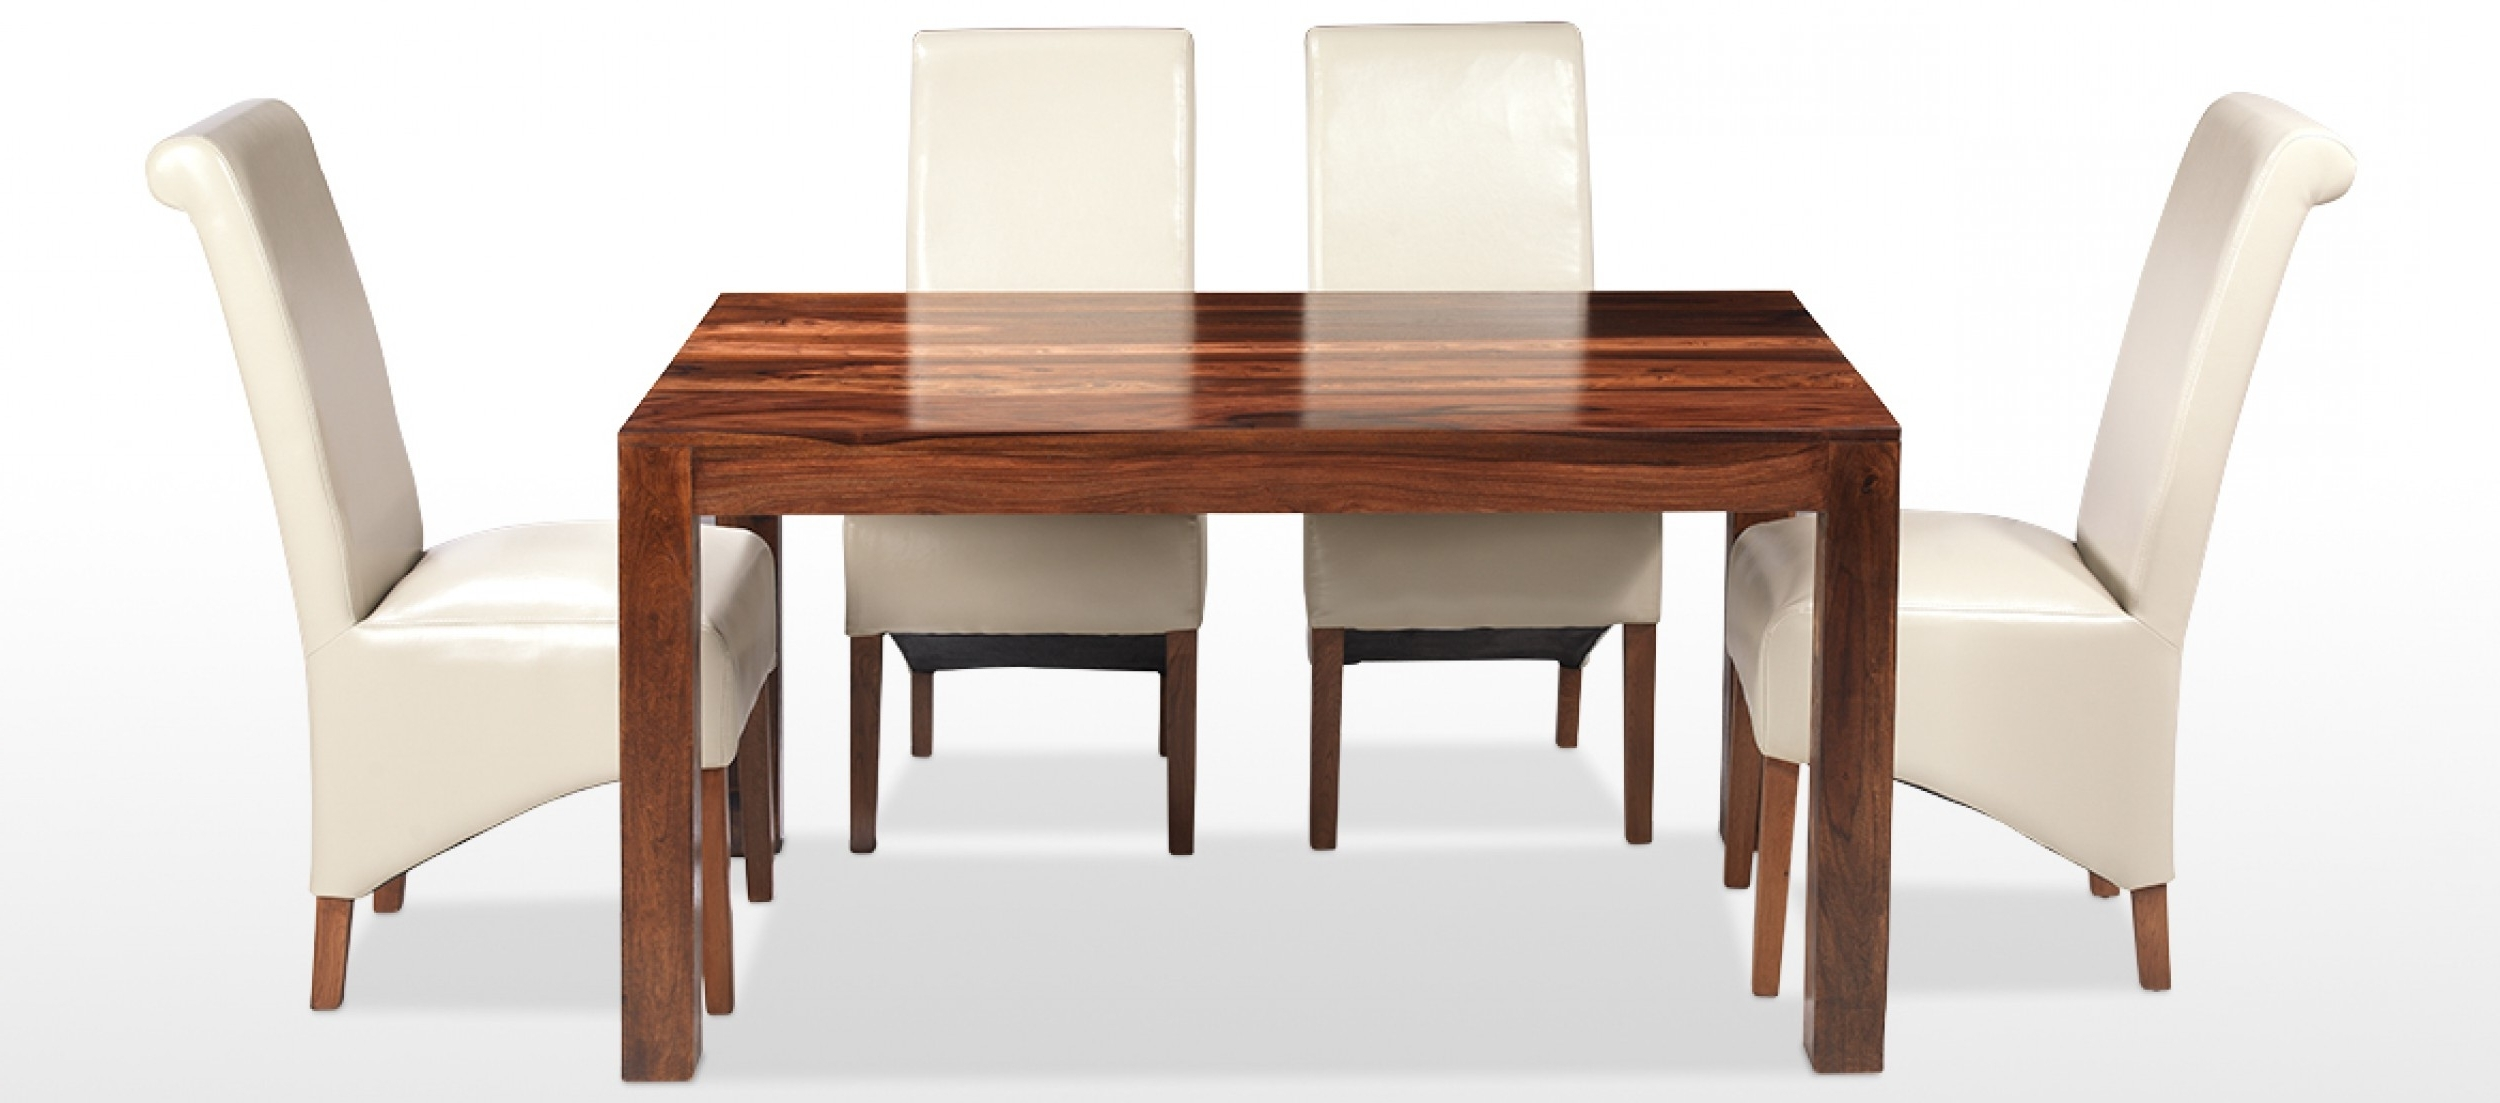 Most Popular Sheesham Dining Tables And 4 Chairs Regarding Cube Sheesham 140 Cm Dining Table And 4 Chairs (View 7 of 25)